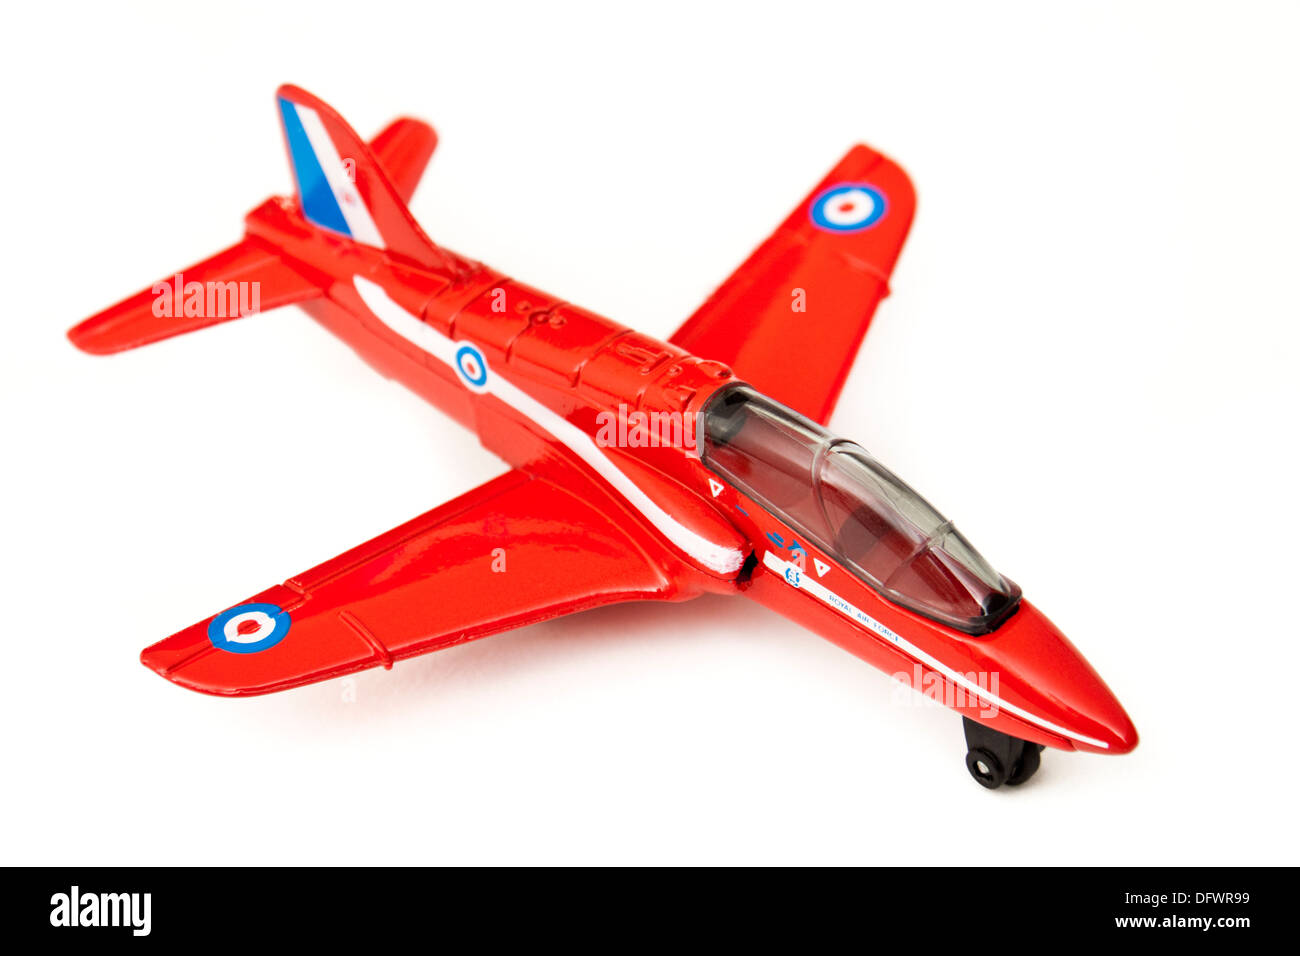 Matchbox (1991) diecast model replica of the BAe Hawk Trainer Mk1 aeroplane, as used by 'The Red Arrows' (RAF Aerobatic Team) - Stock Image